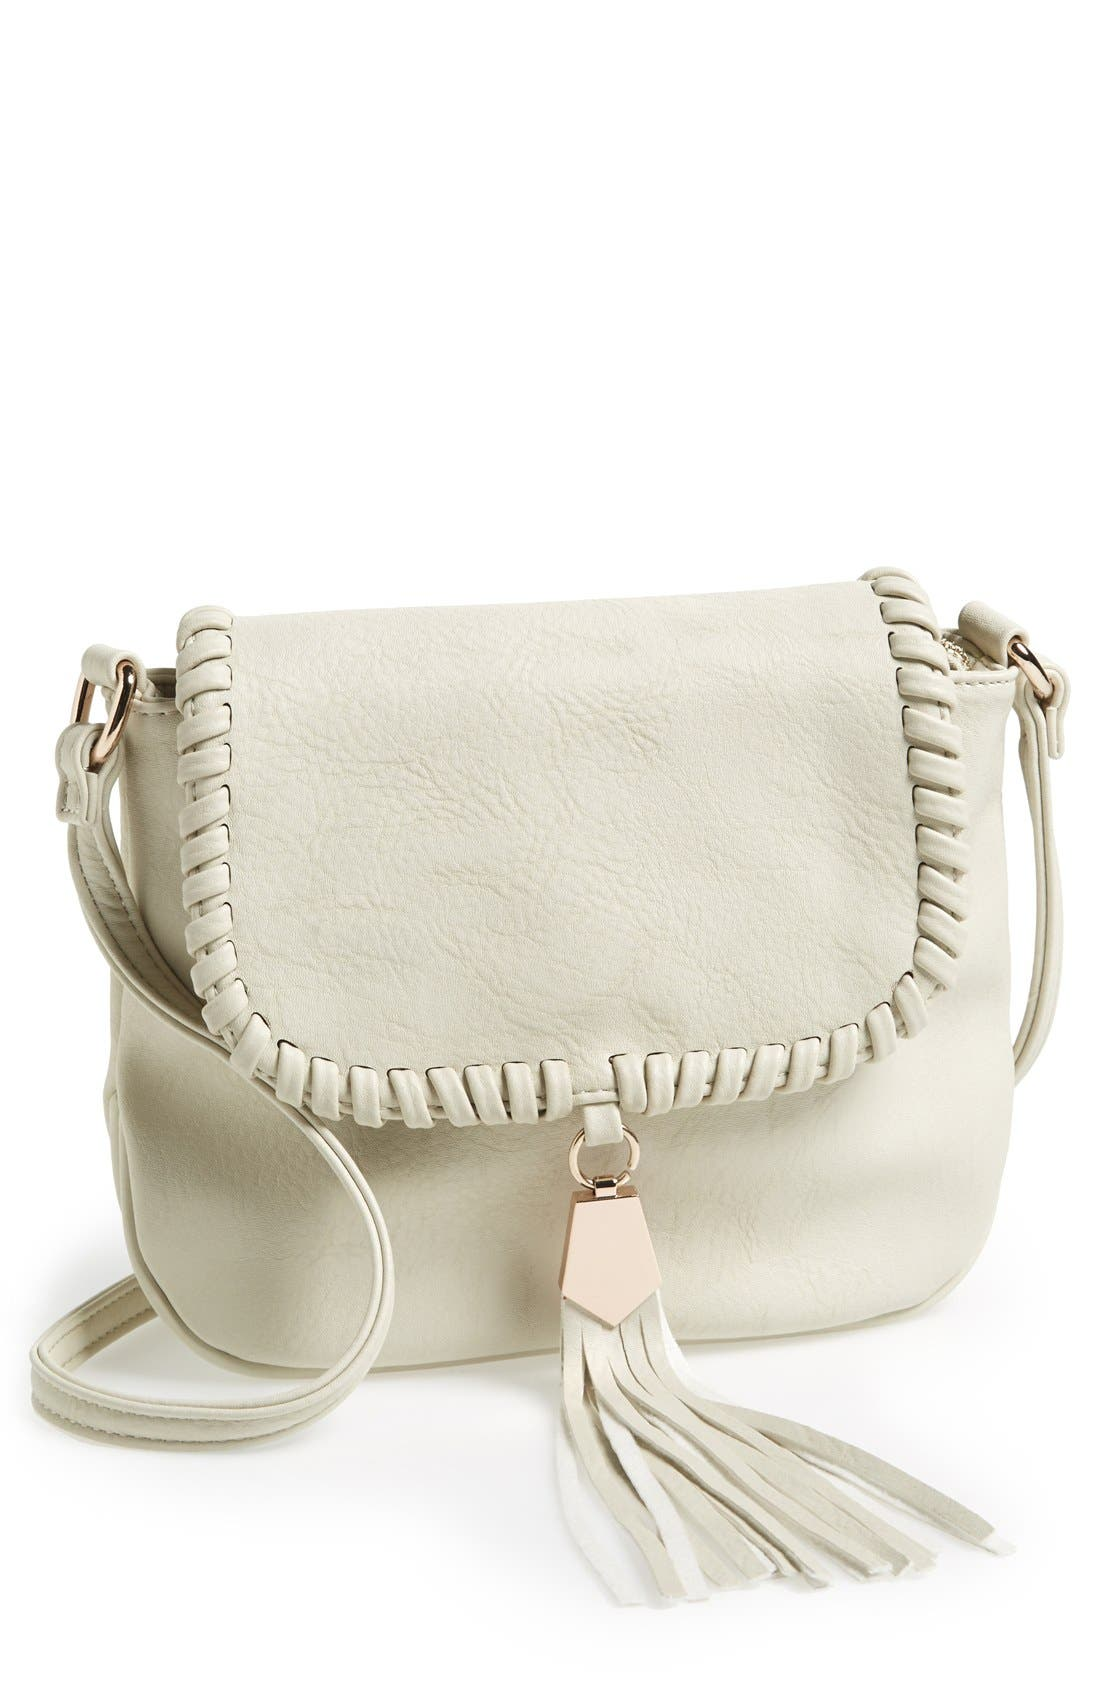 'Arlingtone' Crossbody Bag,                             Main thumbnail 1, color,                             Bone